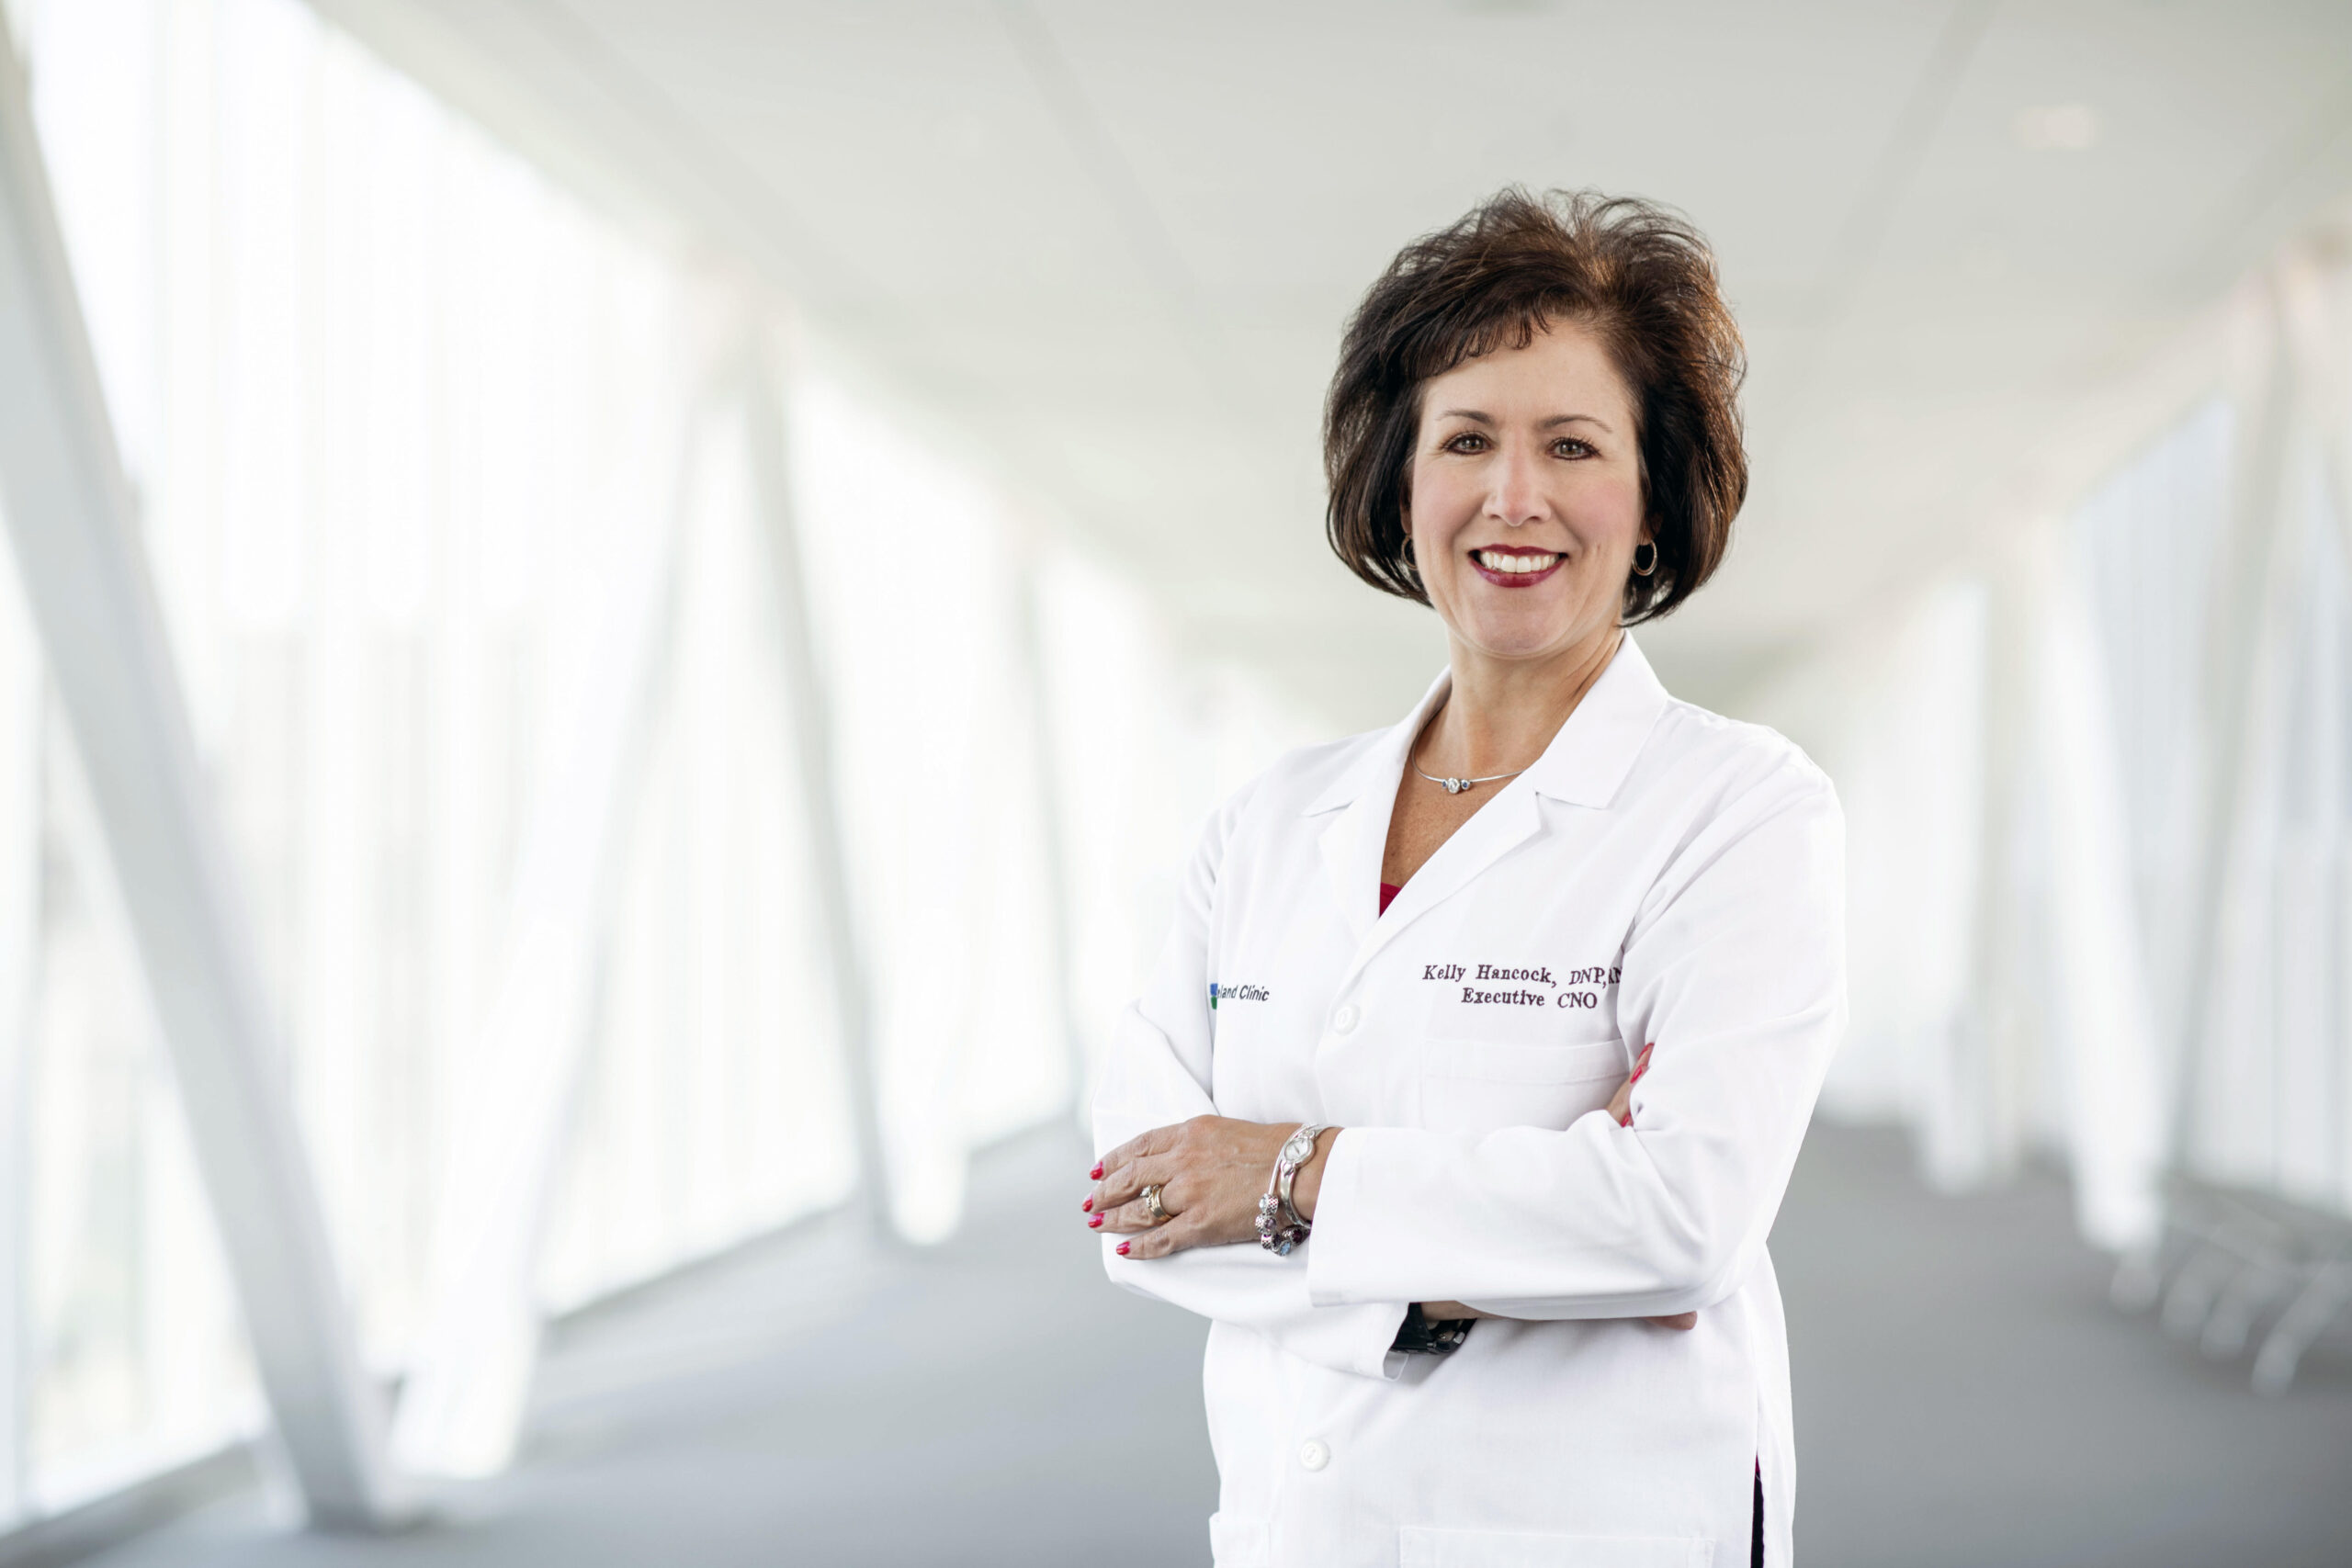 Kelly Hancock Trailblazes an Elevated Path for Nurses Worldwide as the First Chief Caregiver Officer